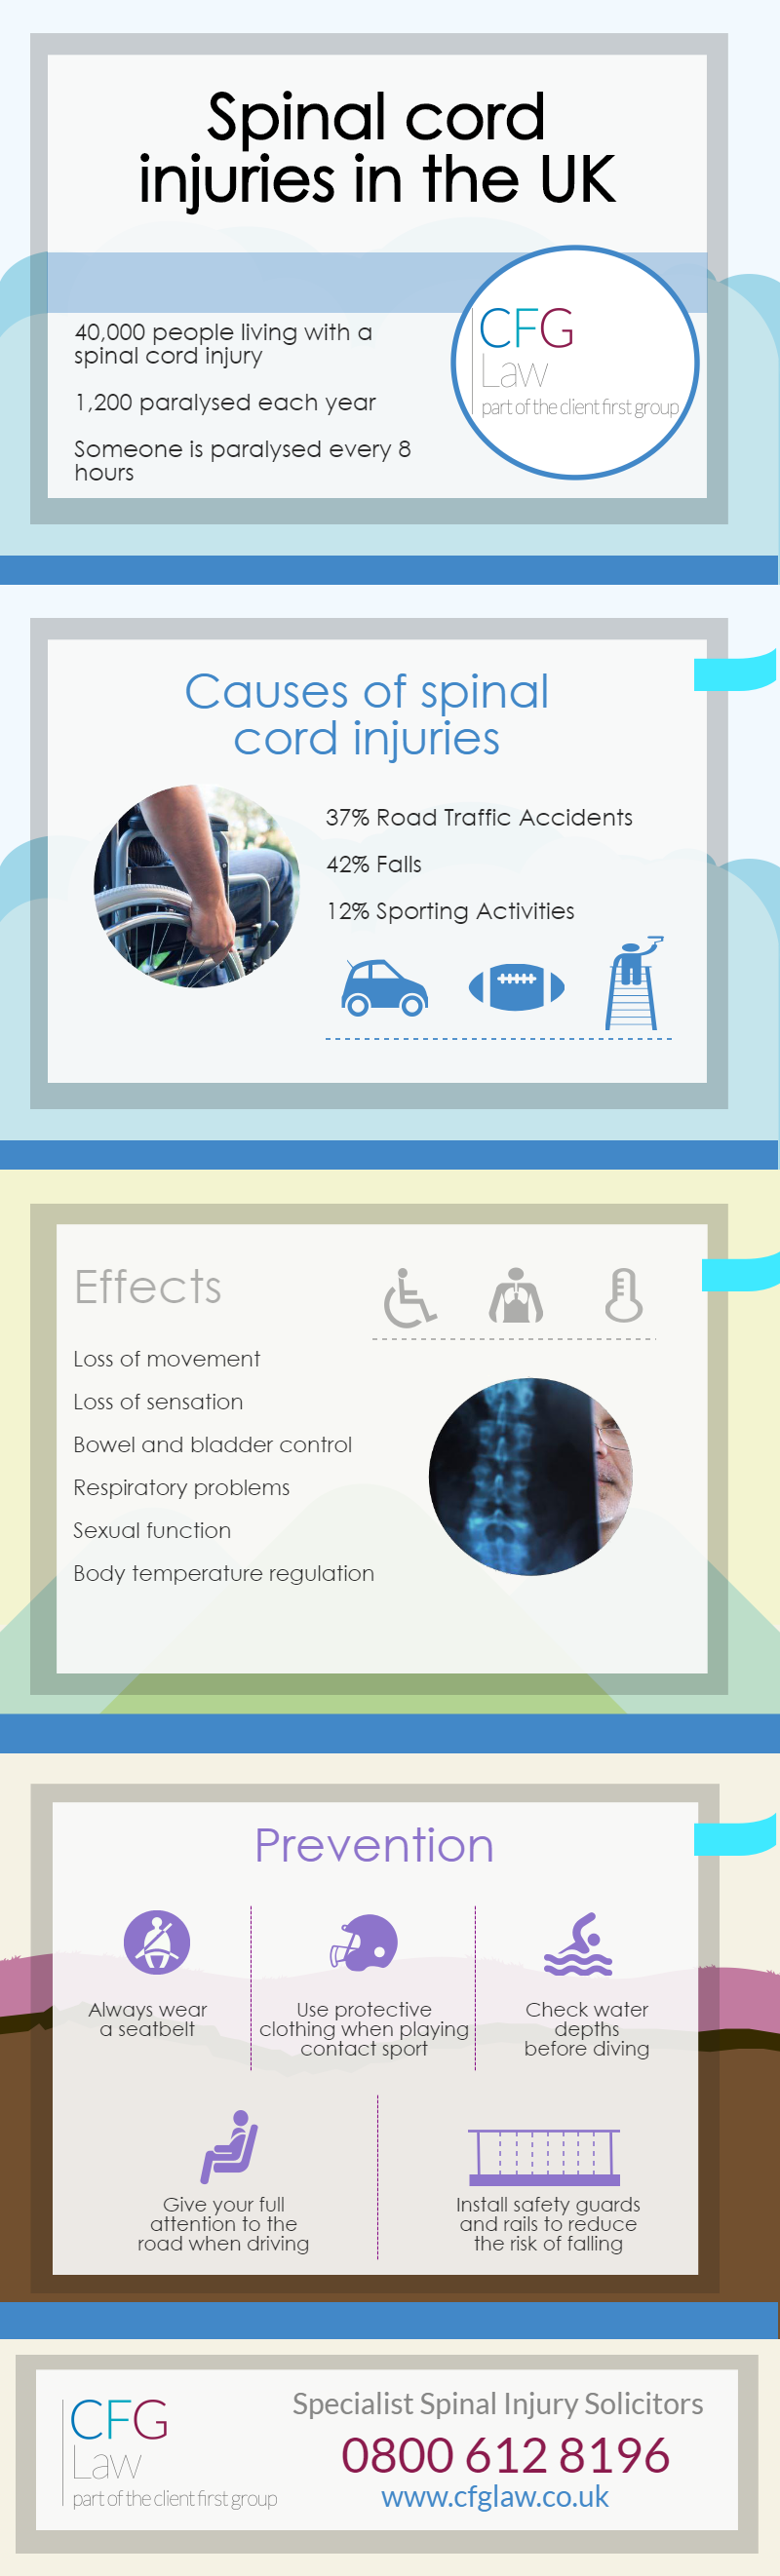 Spinal Cord Injuries in the UK - Infographic